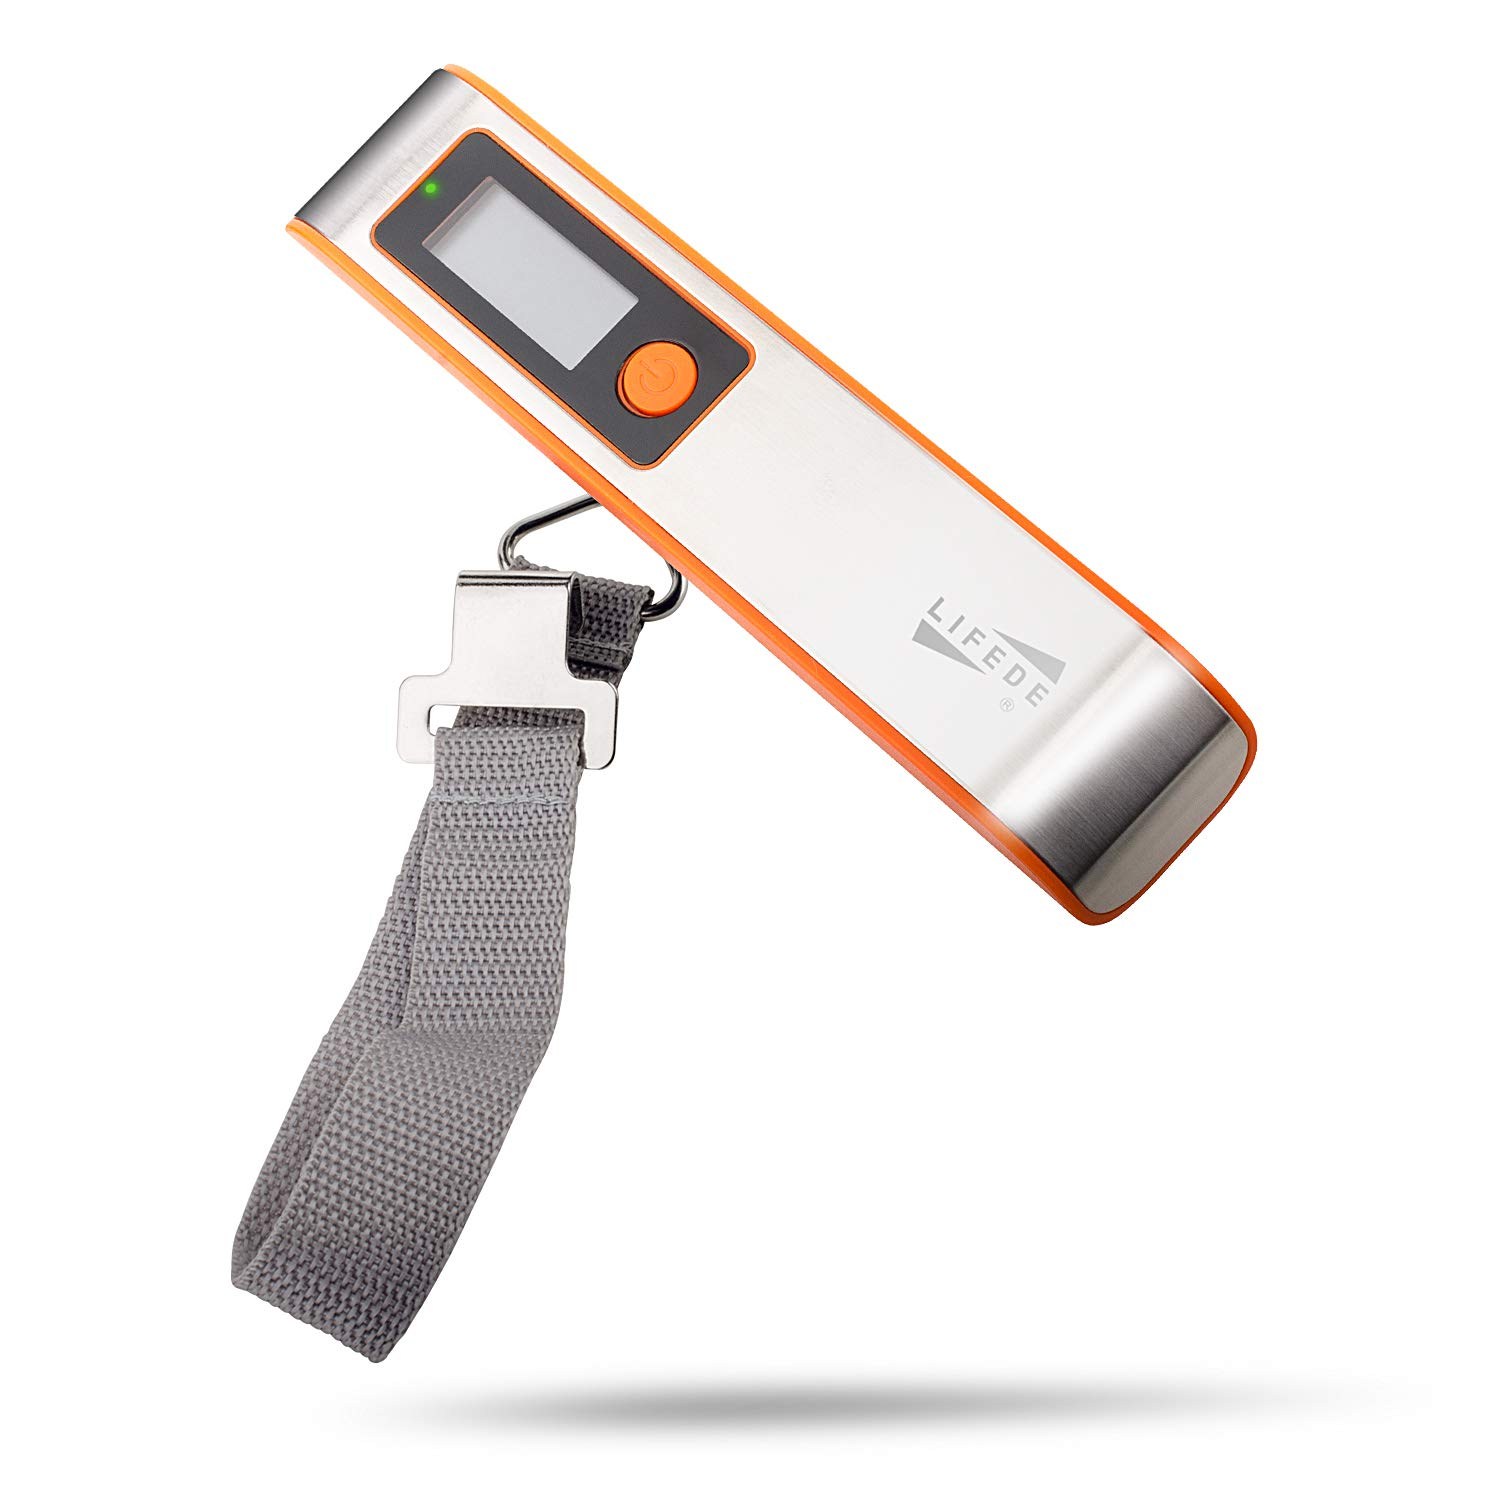 Digital Luggage Scale, Luggage Weight Scale with Weight Alarm Light, Portable Heavy Duty Weight Scale, Up to 110LB with Tare Function, Gift for Traveler, Orange.